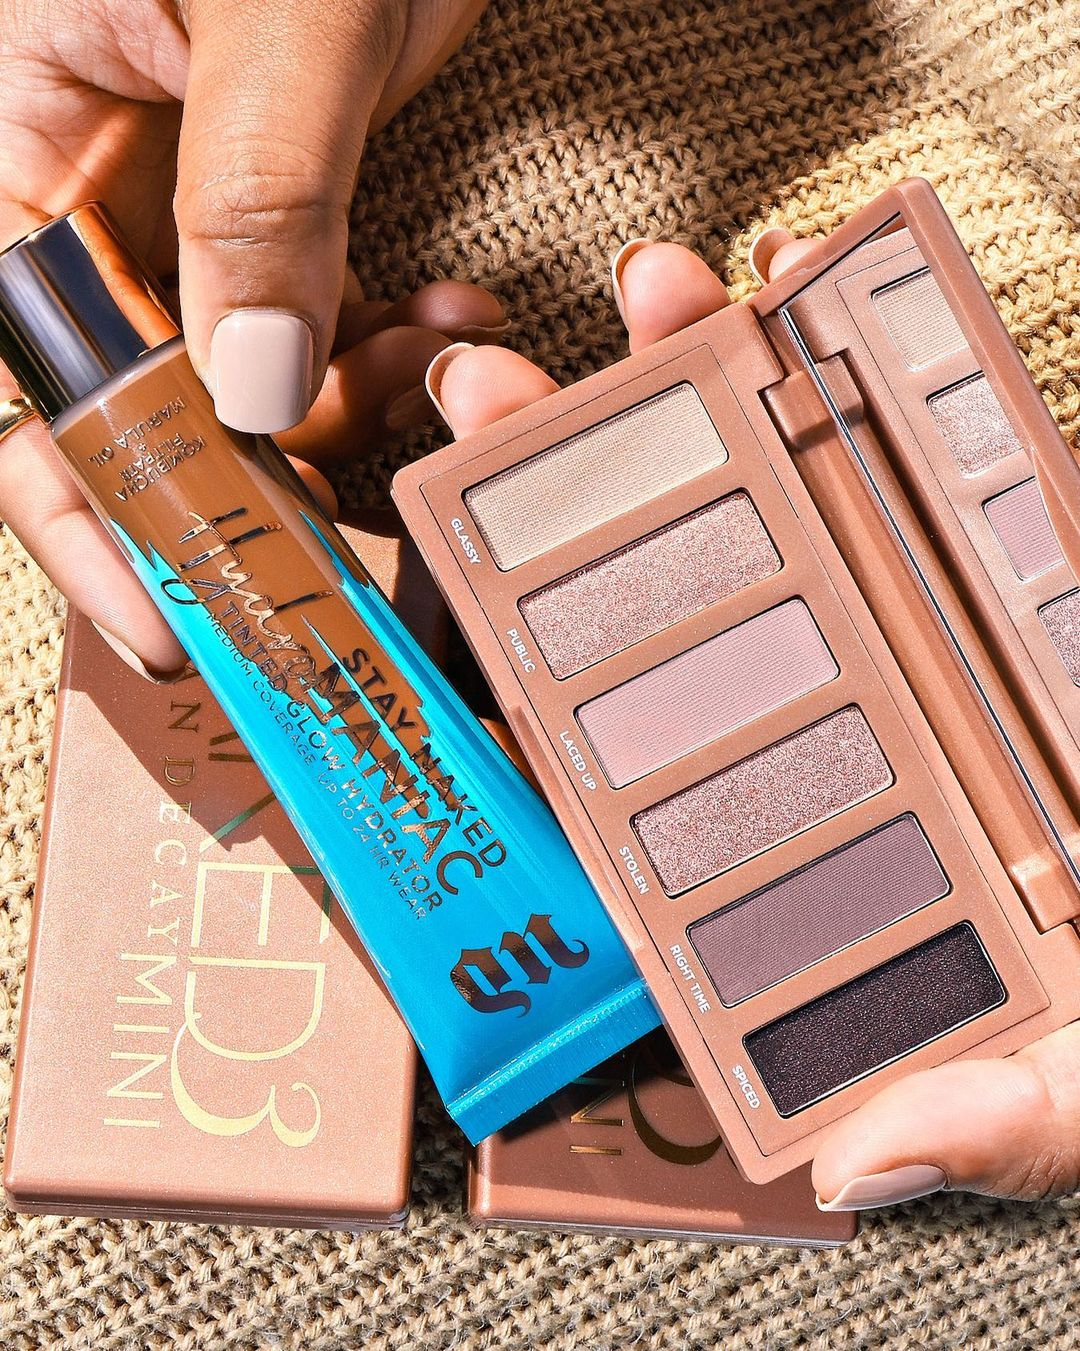 Urban Decay's BB Stay Naked Hydromaniac Tinted Glow Hydrator And Eyeshadow palette